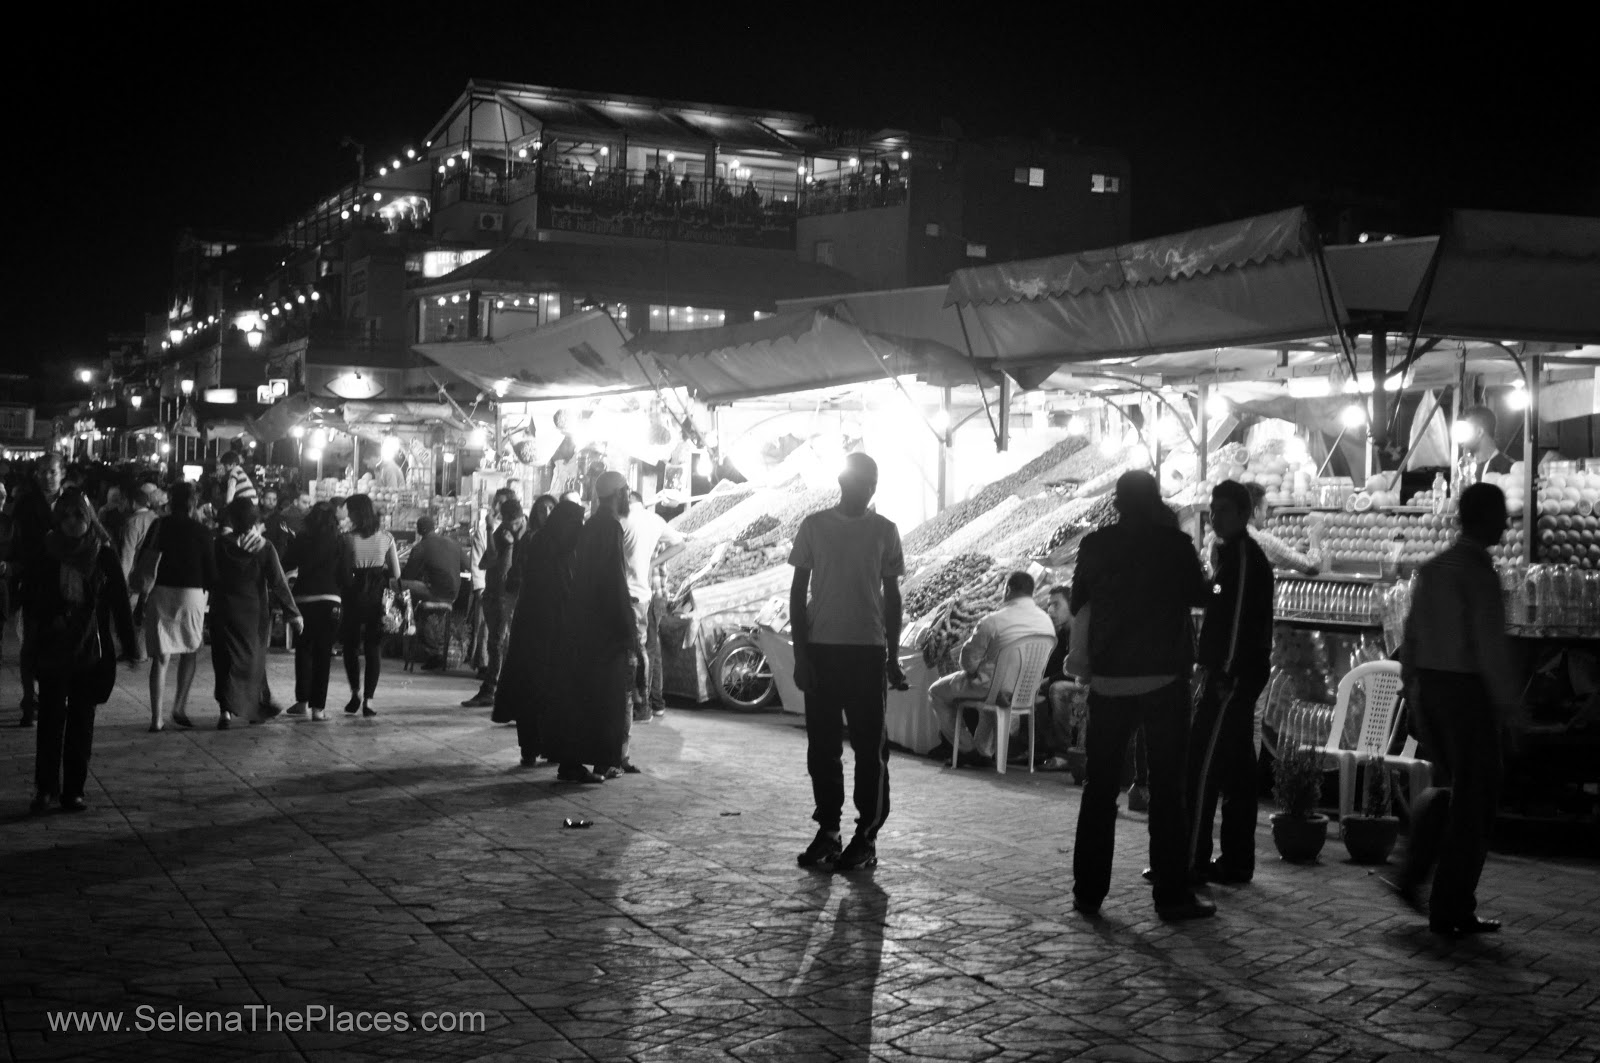 Jamaa el Fna  - The Square of Morocco by Night